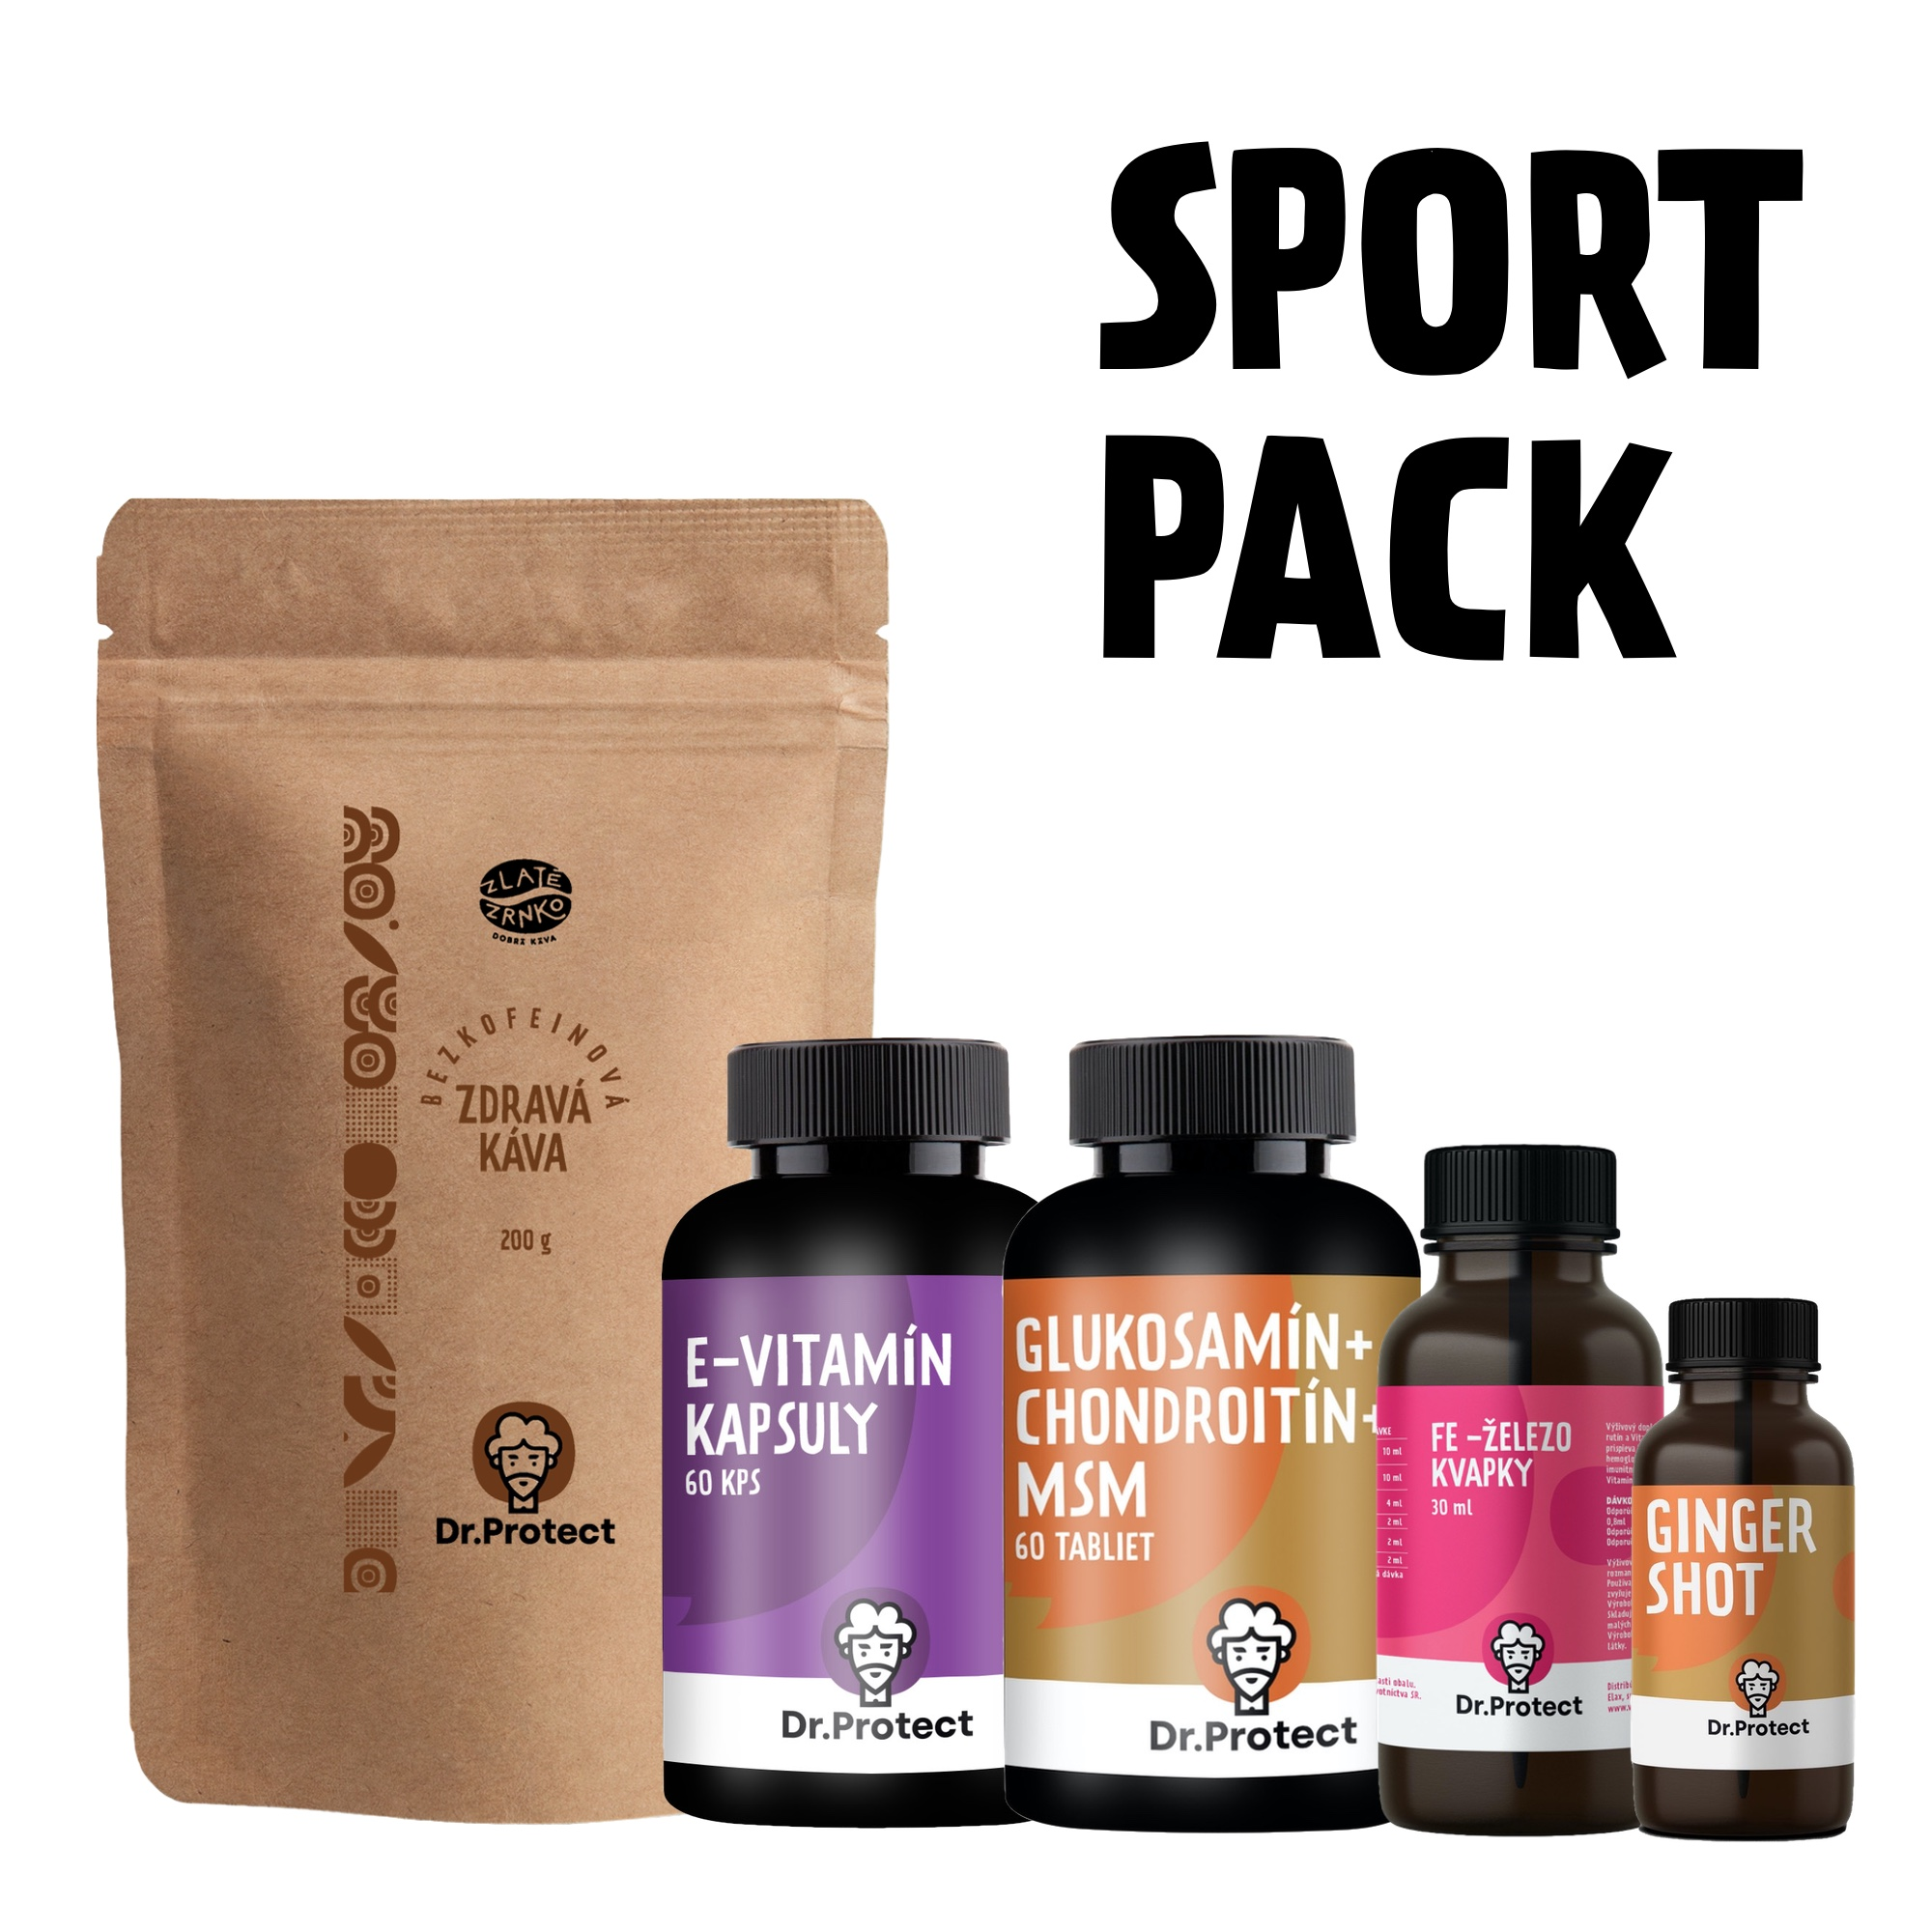 Dr.Protect Sport Pack